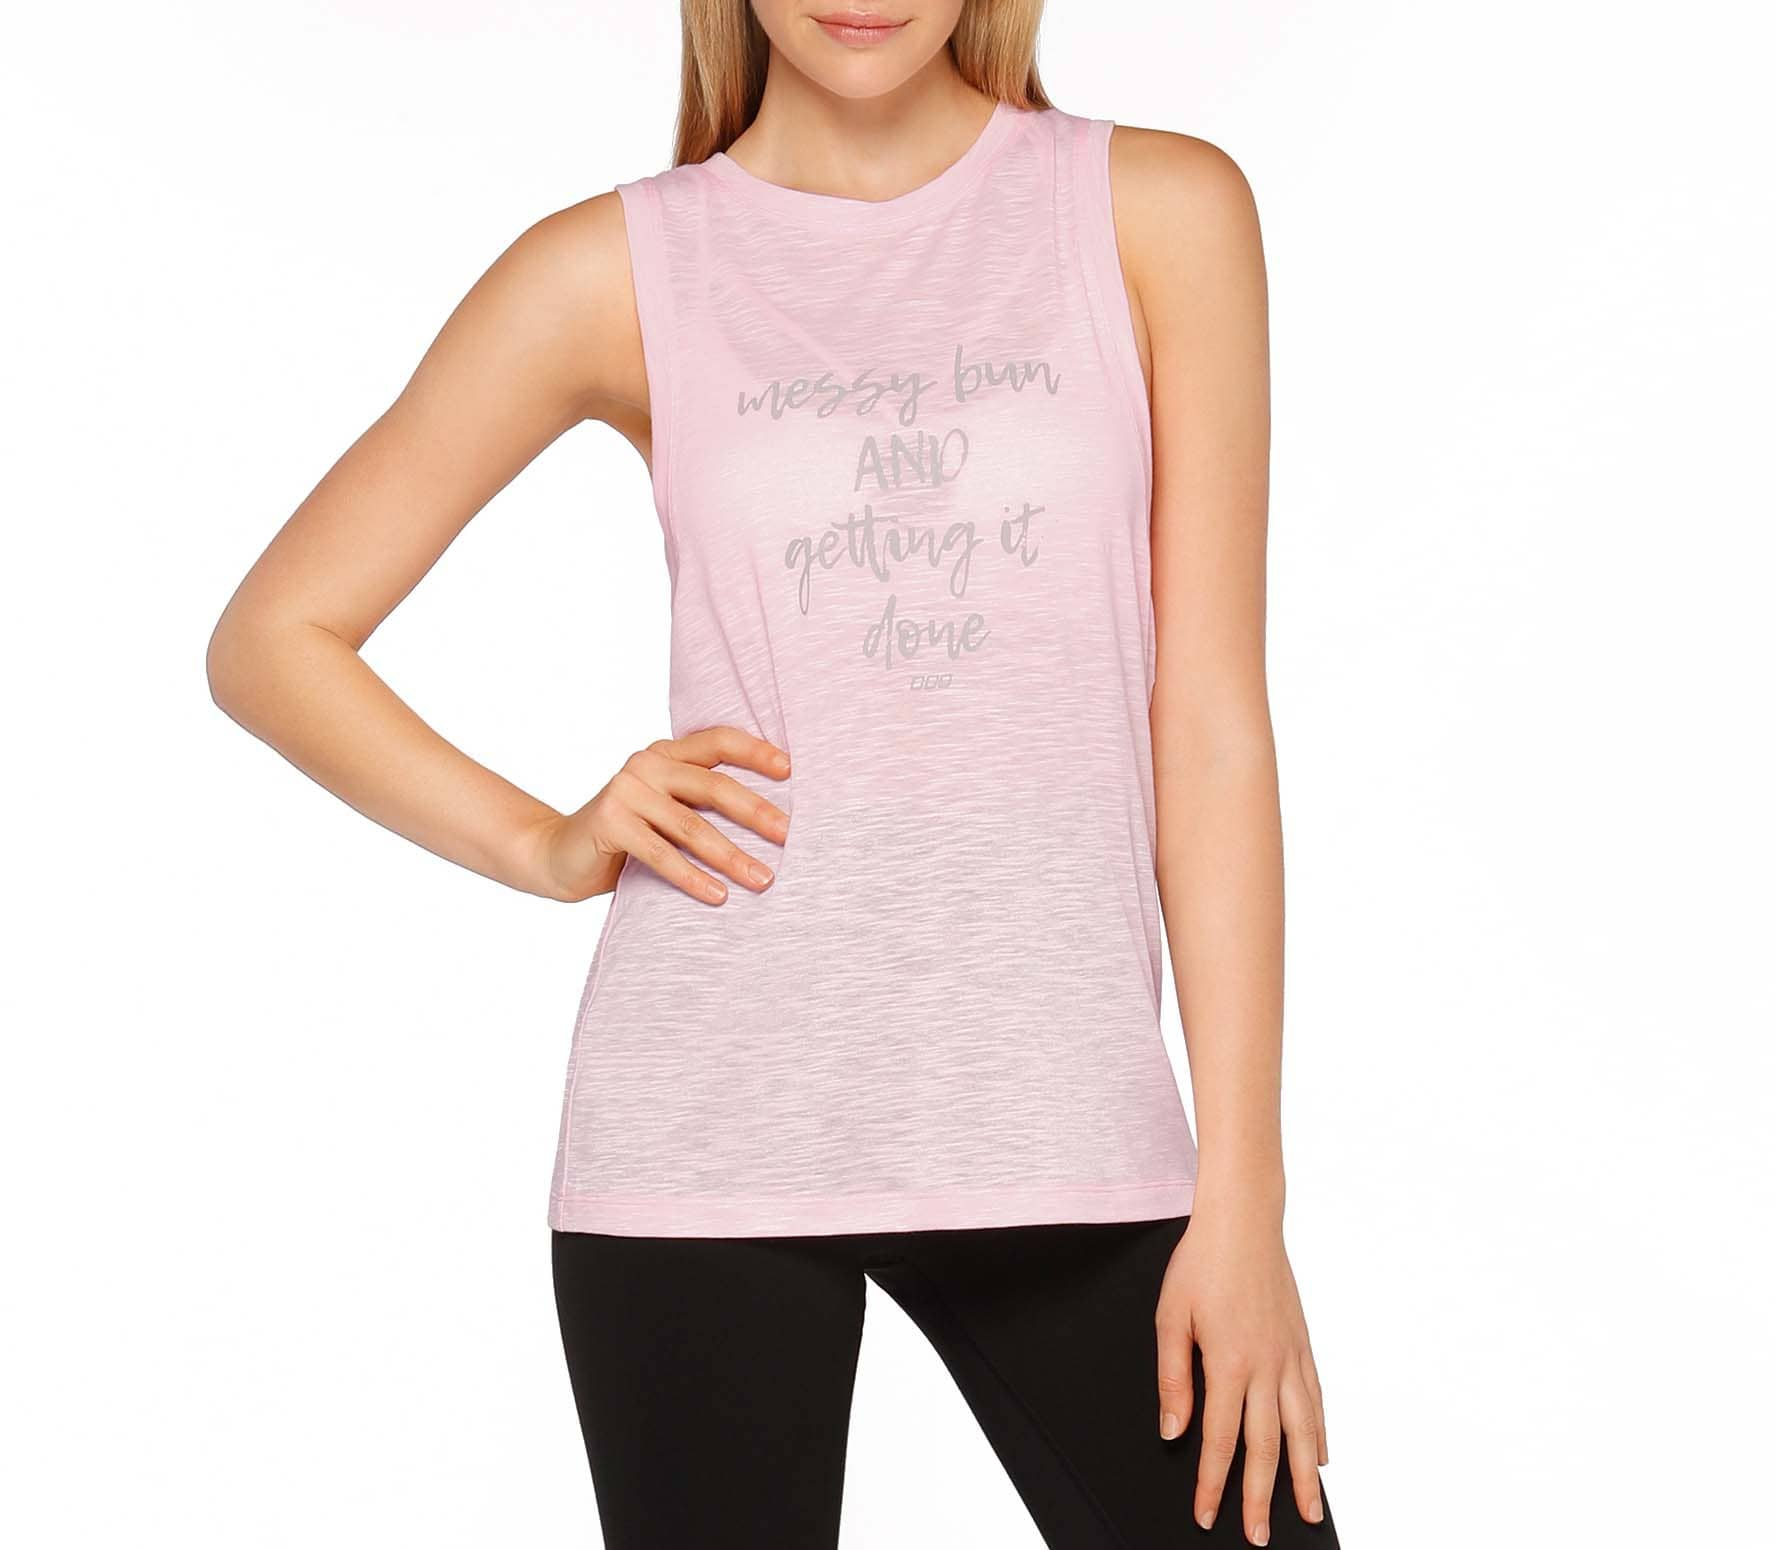 Lorna Jane - Getting It Done women's training tank top top (pink)